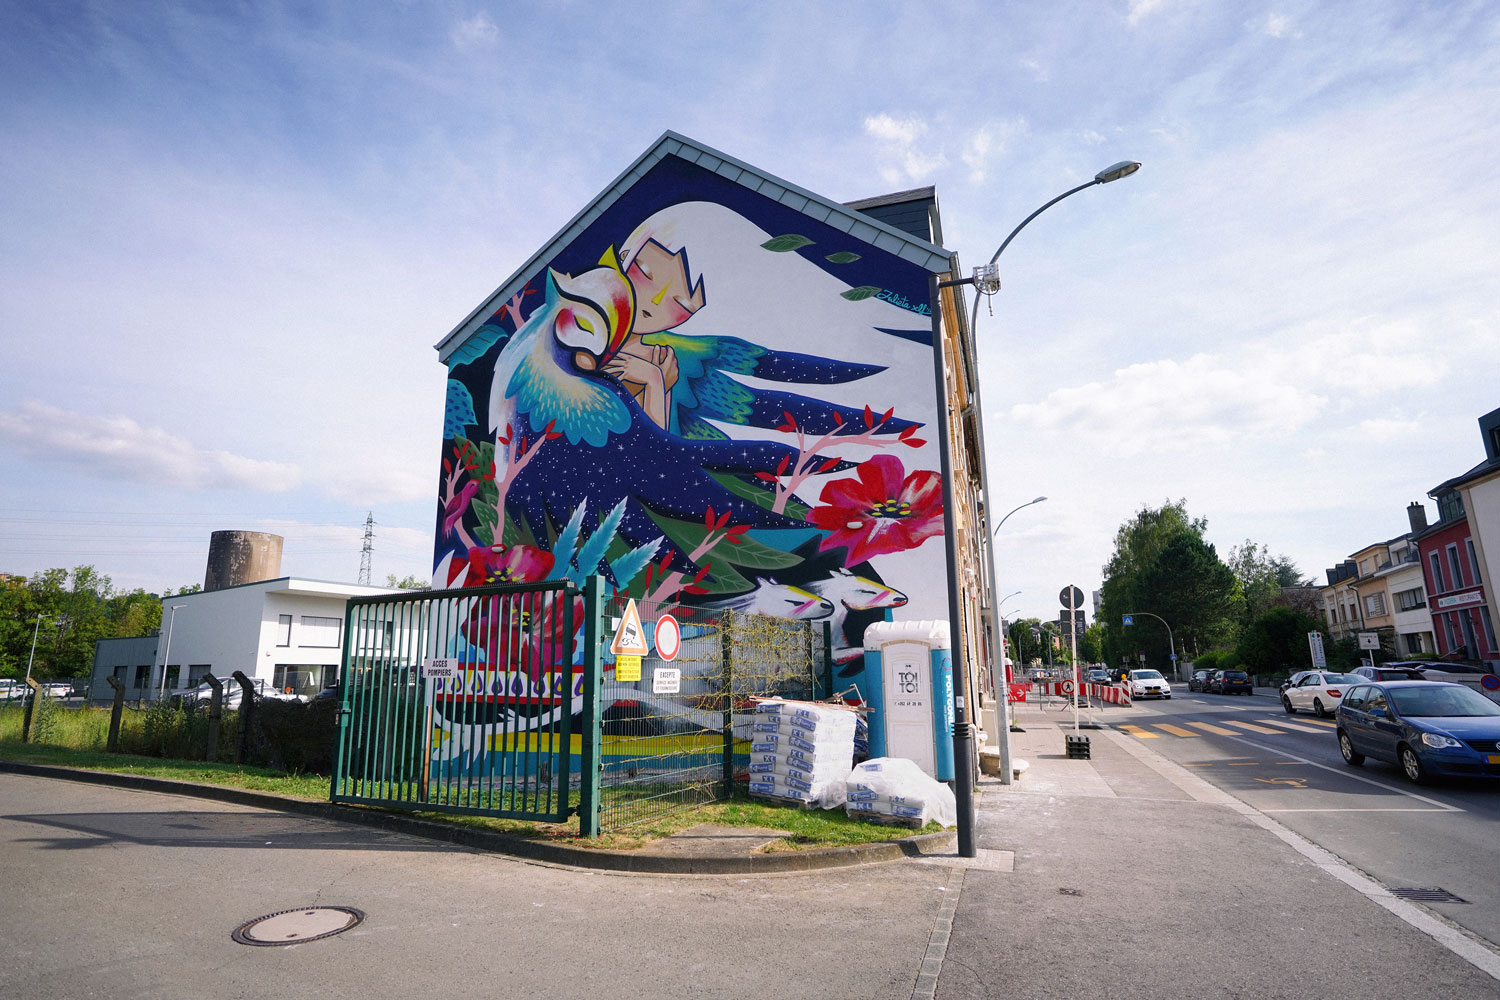 Julieta XLF large mural in Luxembourg Artes & contextos 09 kufas18